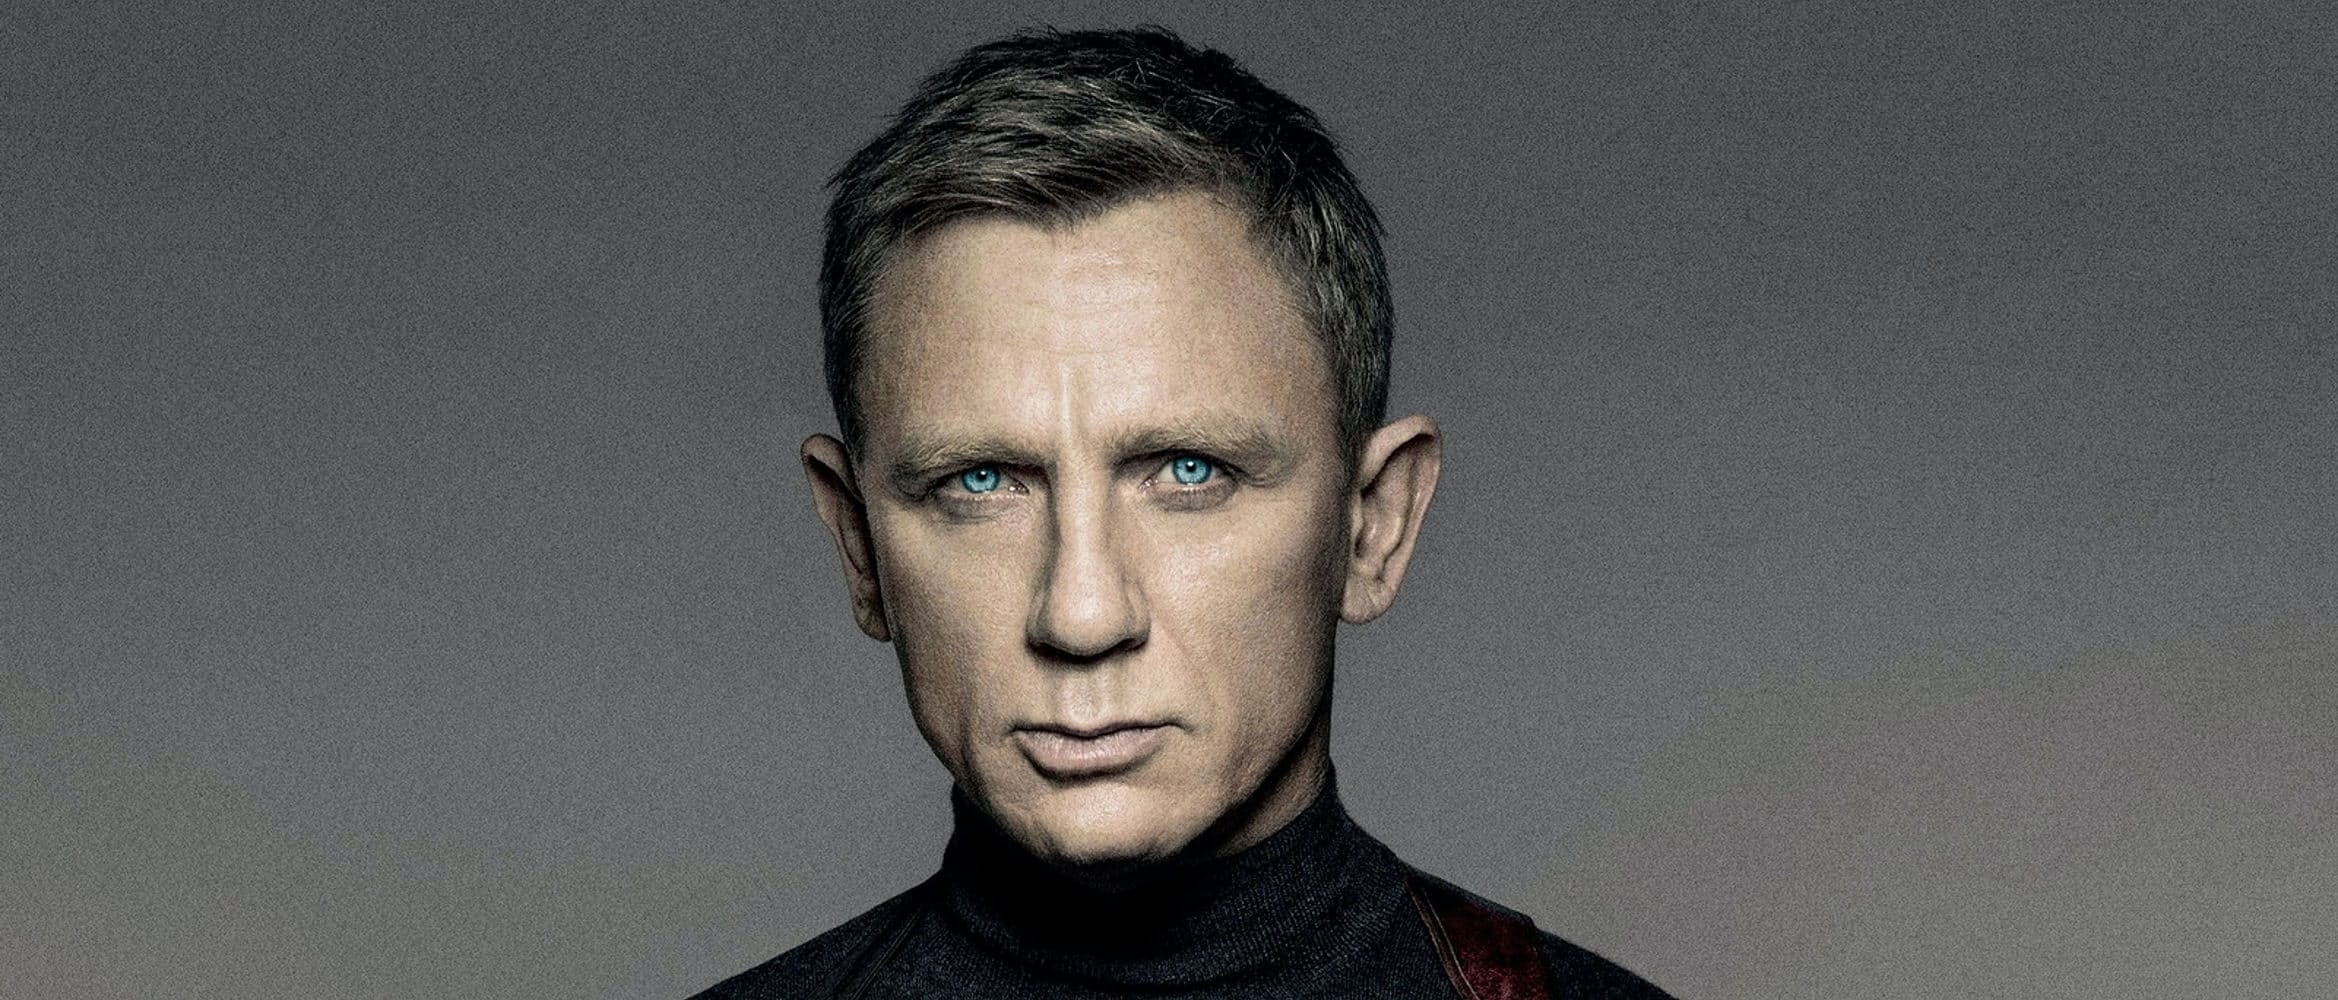 Featured 2x daniel craig spectre face header.jpg?ixlib=rails 2.1